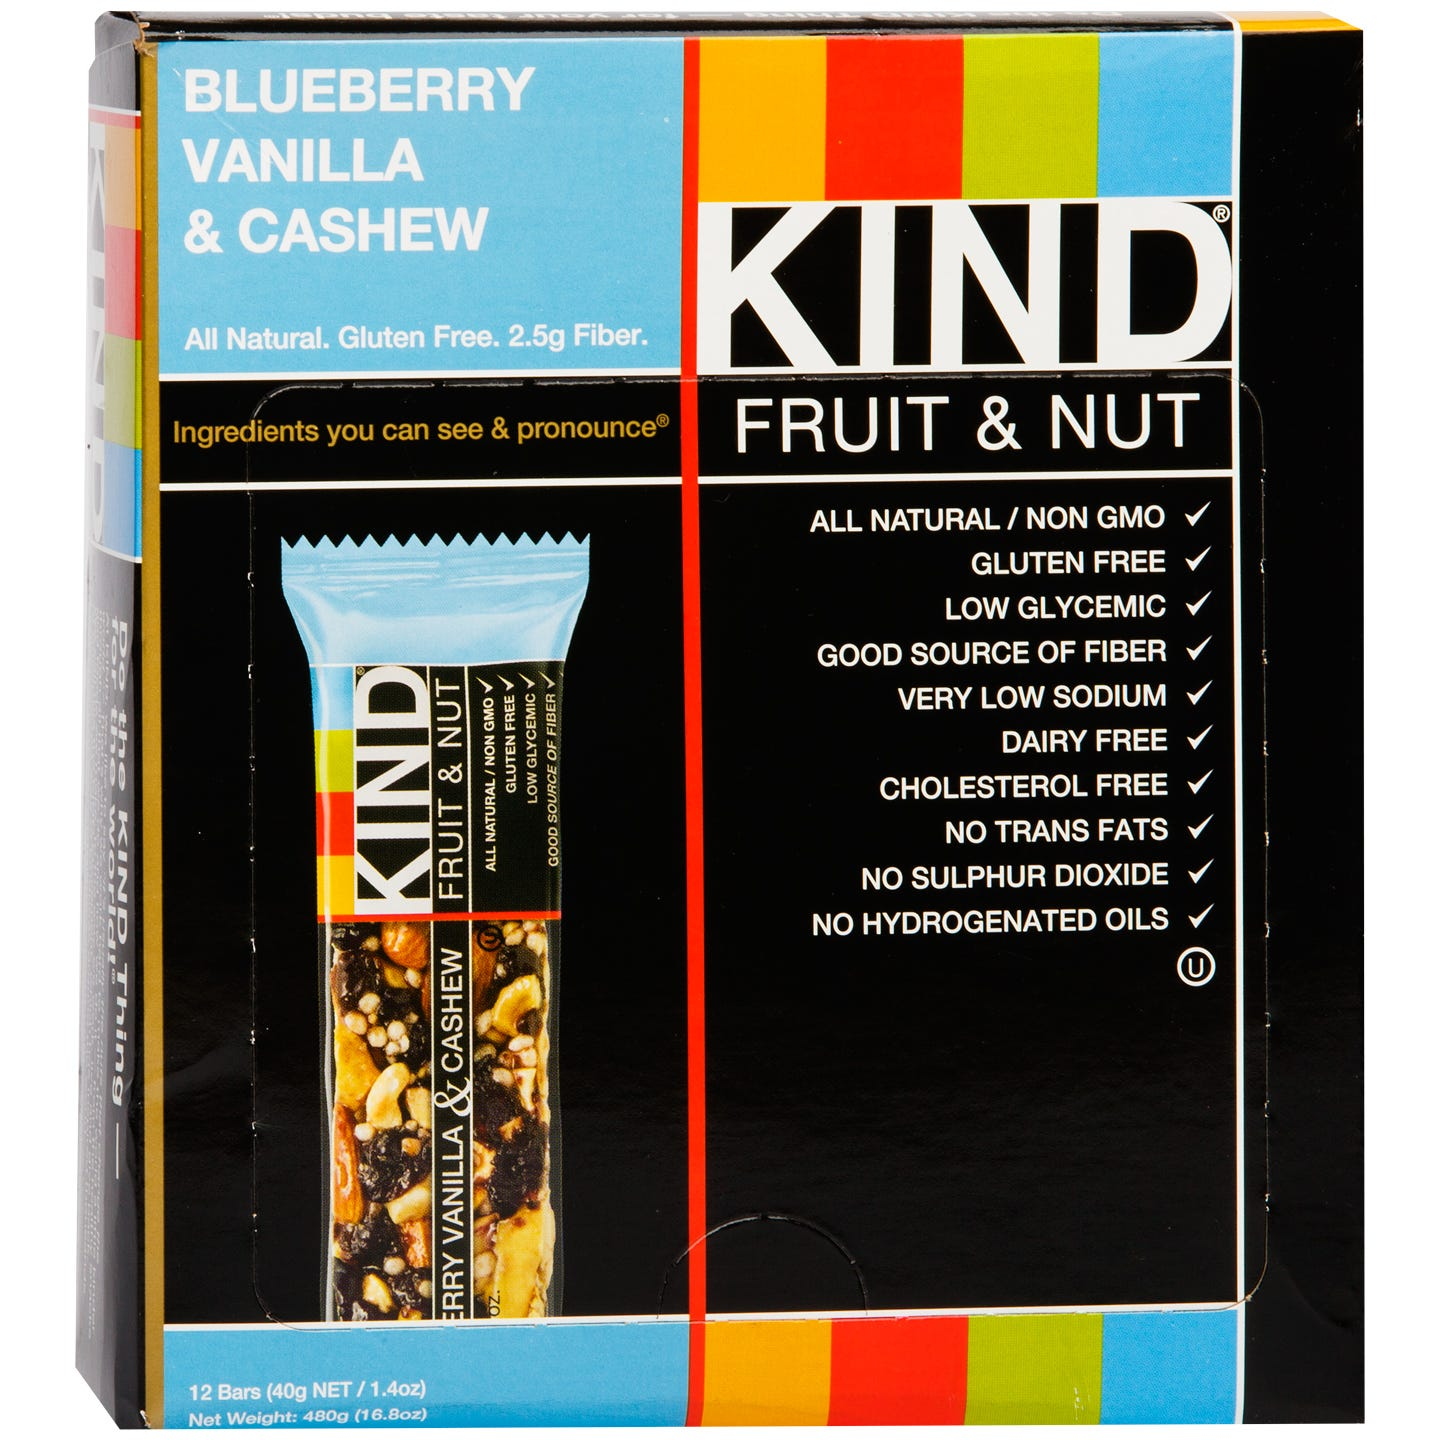 Kind Fruit & Nut Bar Blueberry Vanilla & Cashew (12 ct) - Rapid Diet Weight Loss Products Shop